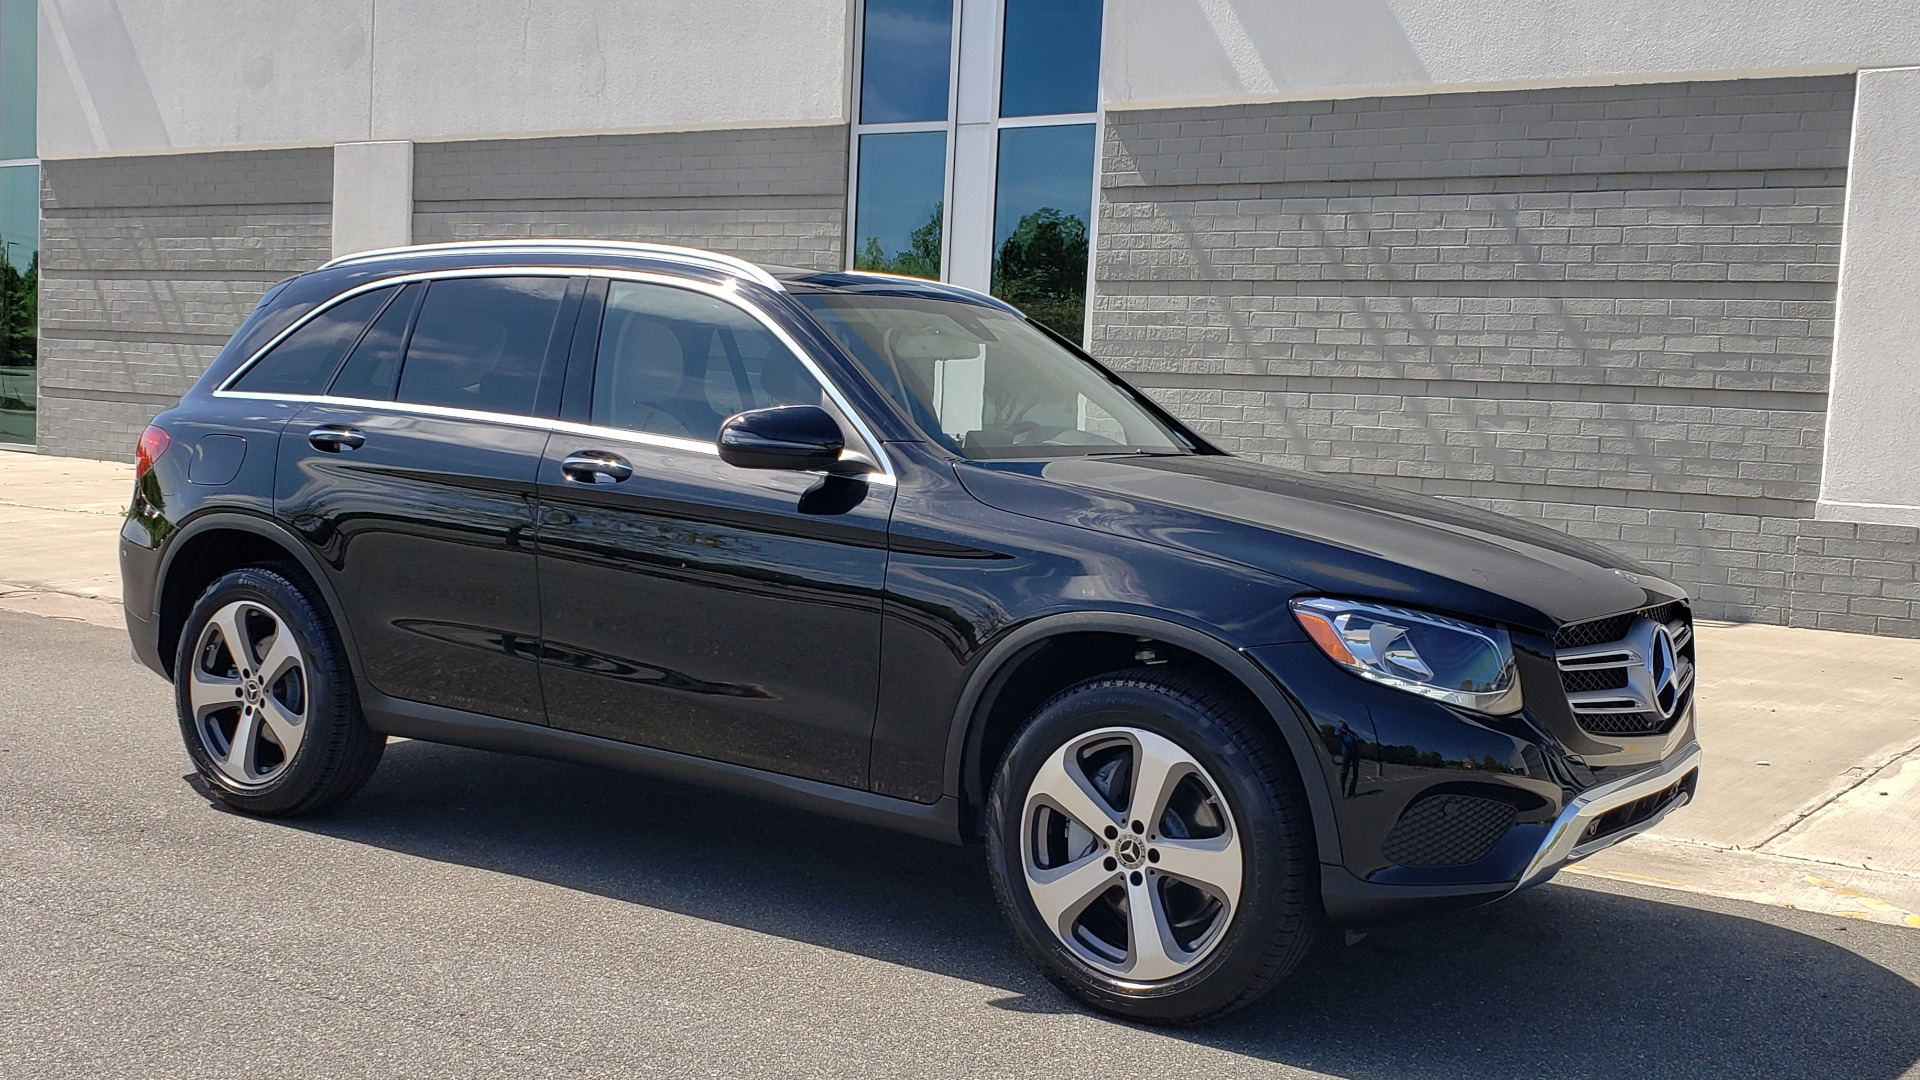 Used 2018 Mercedes-Benz GLC 300 PREMIUM / PANO-ROOF / HTD STS / REARVIEW for sale Sold at Formula Imports in Charlotte NC 28227 7